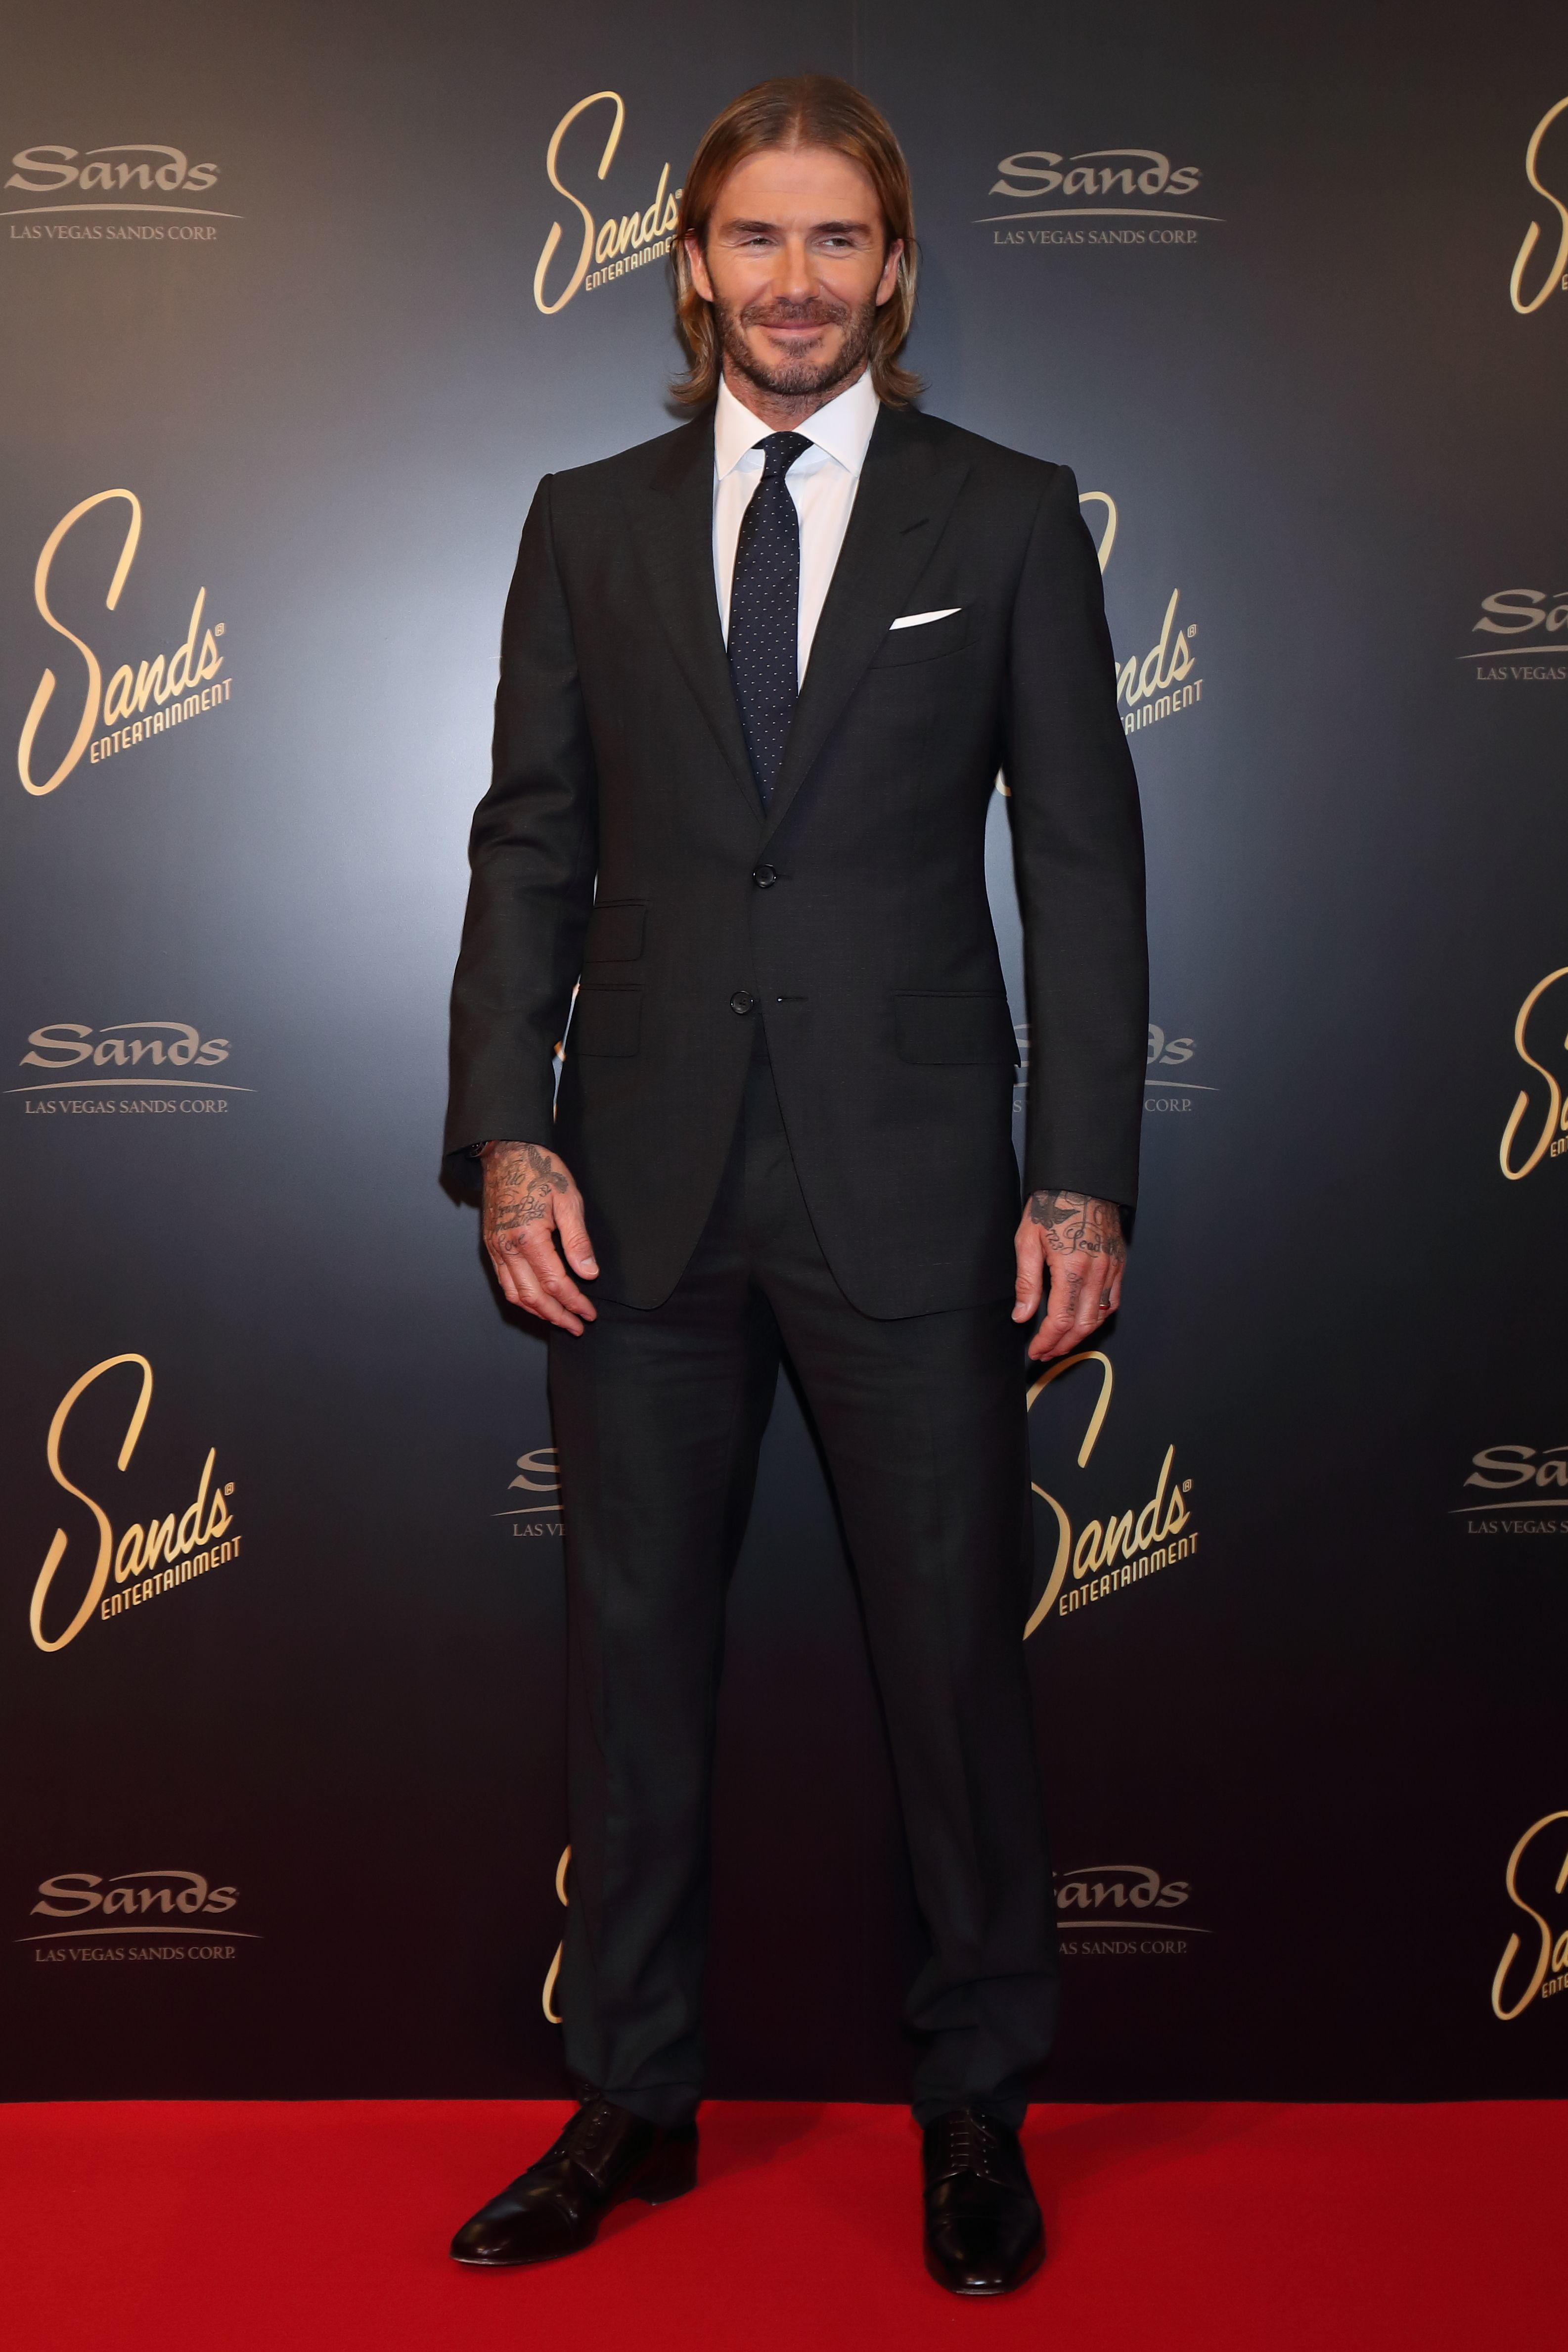 David Beckham attends a photo call for the Las Vegas Sands Corporation in Tokyo on Oct. 4, 2017.